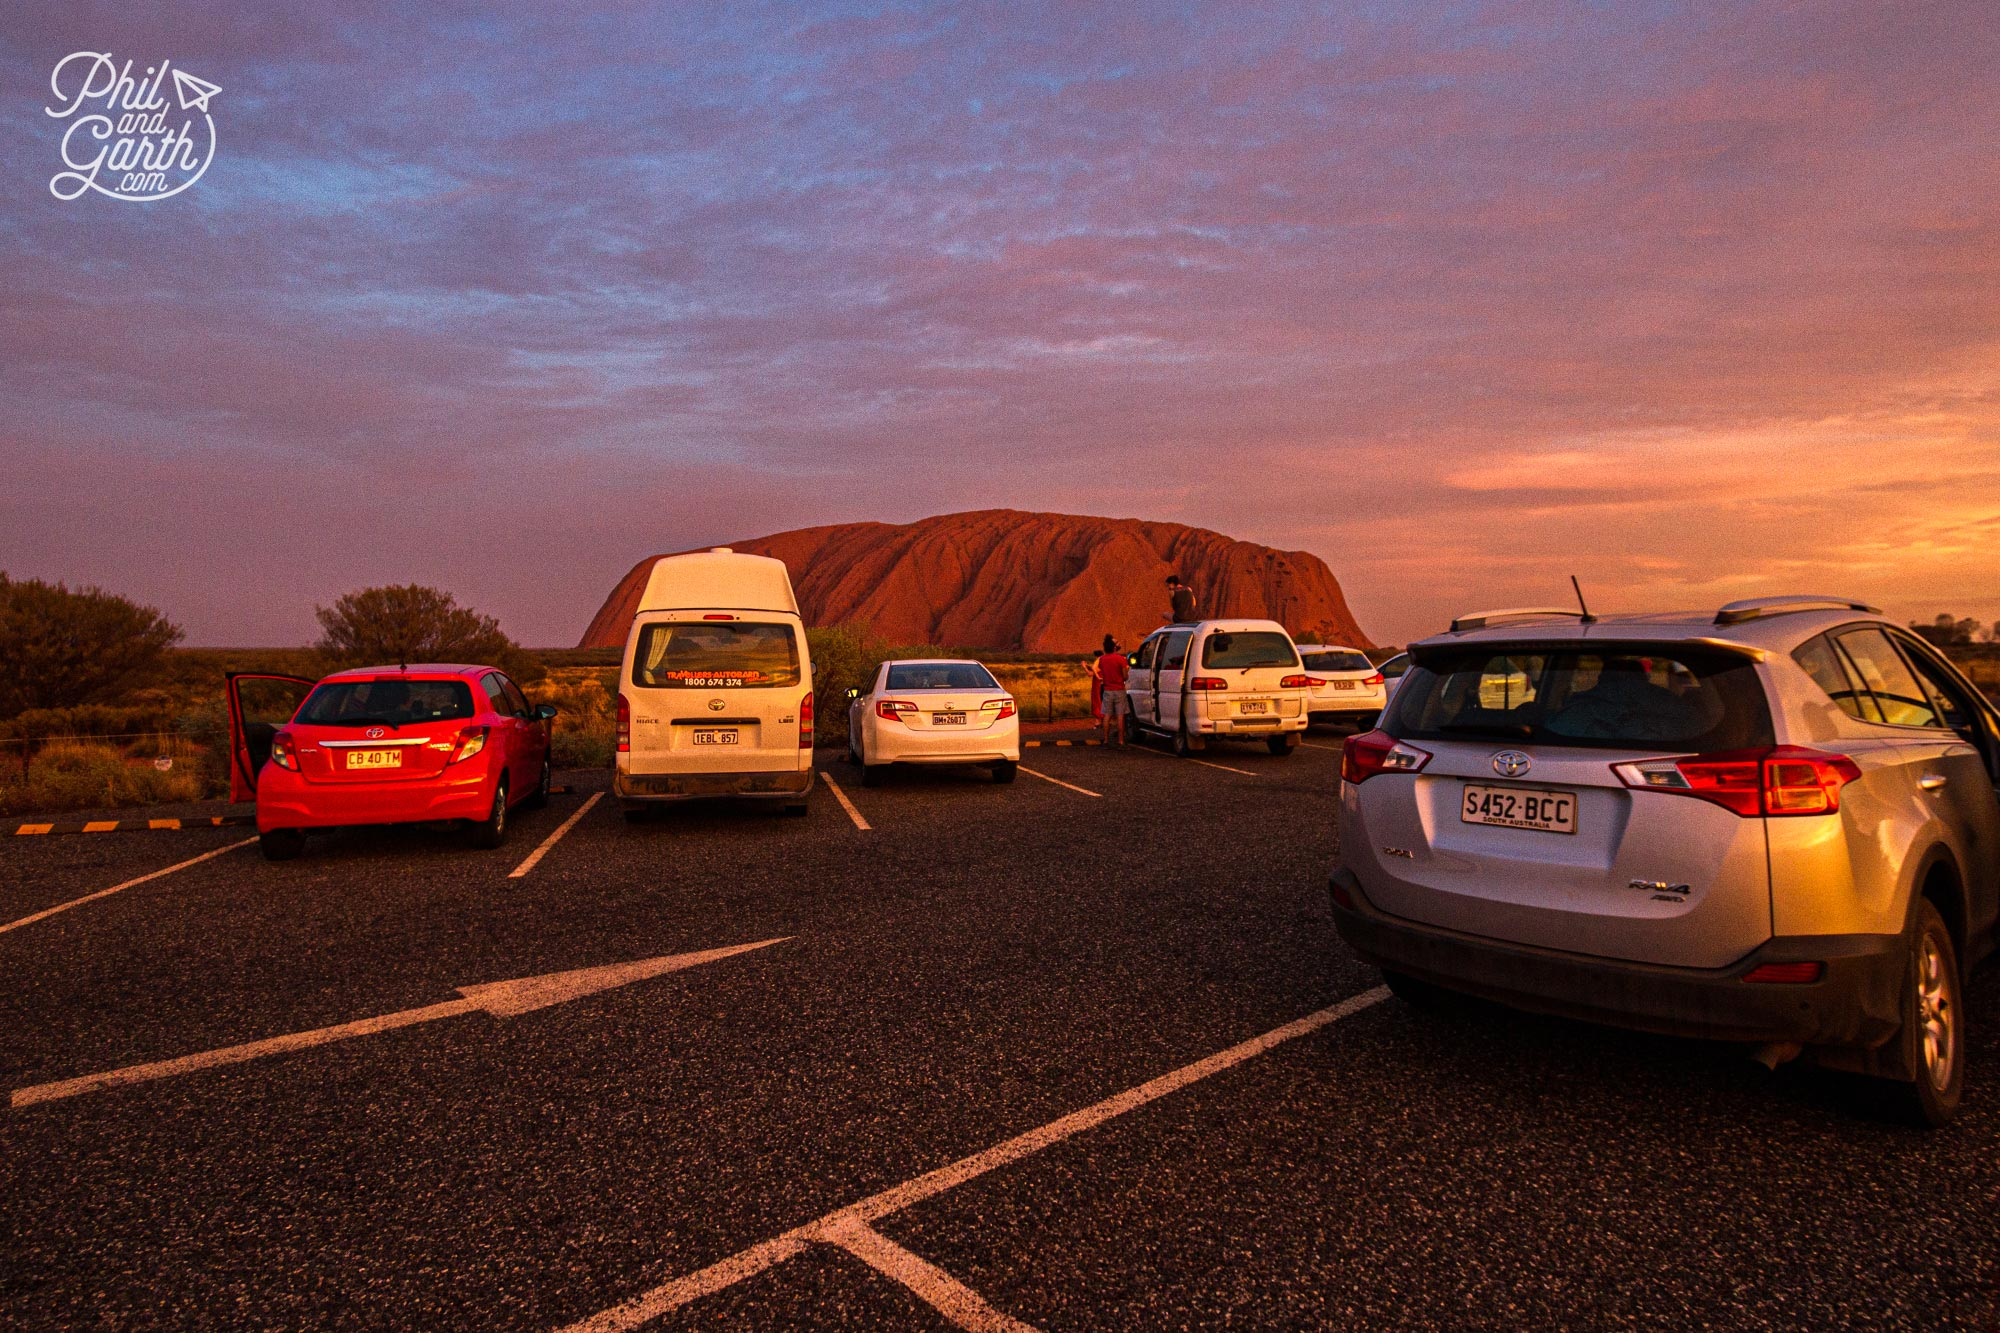 The sunset viewing car park